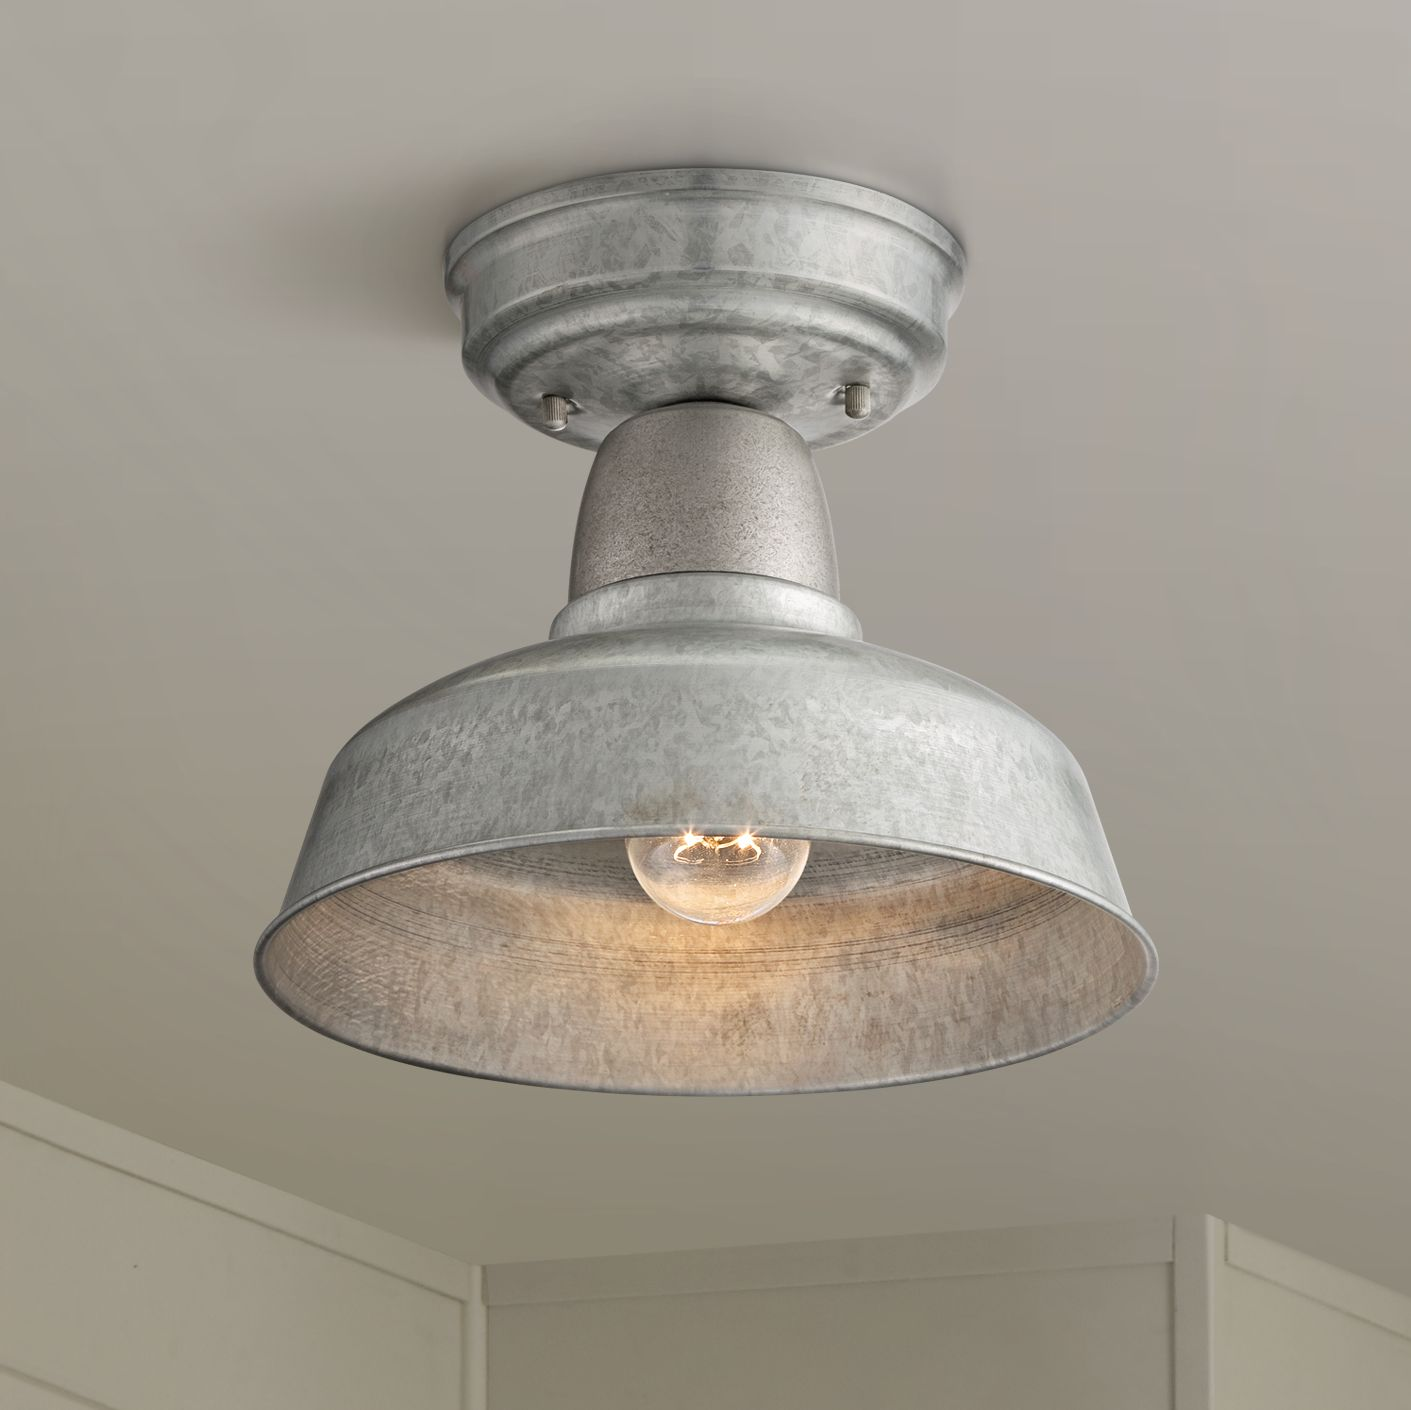 "John Timberland Rustic Outdoor Ceiling Light Fixture Semi Flush Urban Barn Farmhouse Galvanized 10 1/4"" for Porch Kitchen"